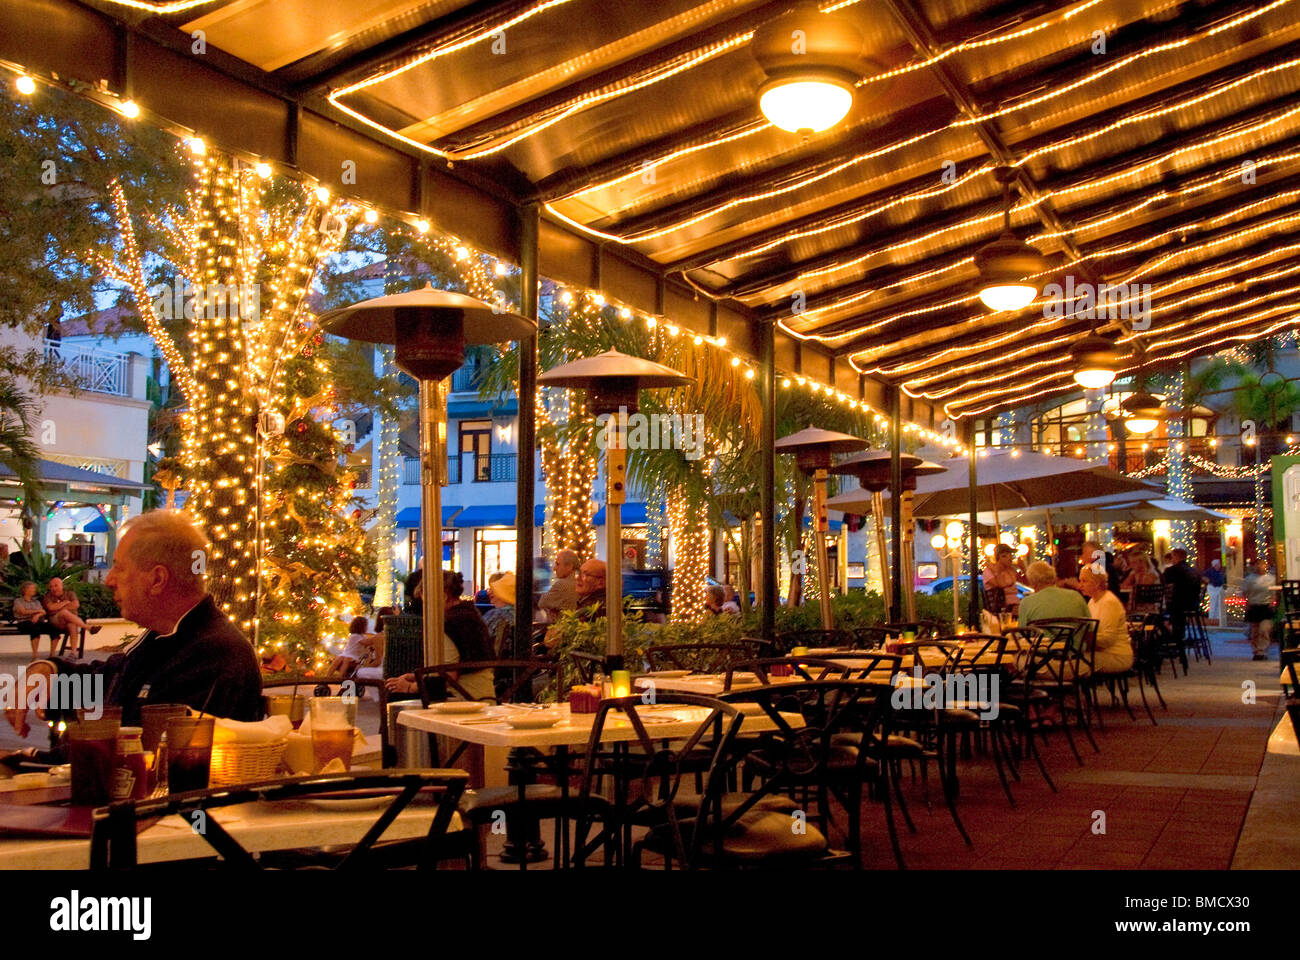 Patio restaurant overlooking a square on 5th Avenue South during Christmas festivities in Naples, Florida, USA - Stock Image